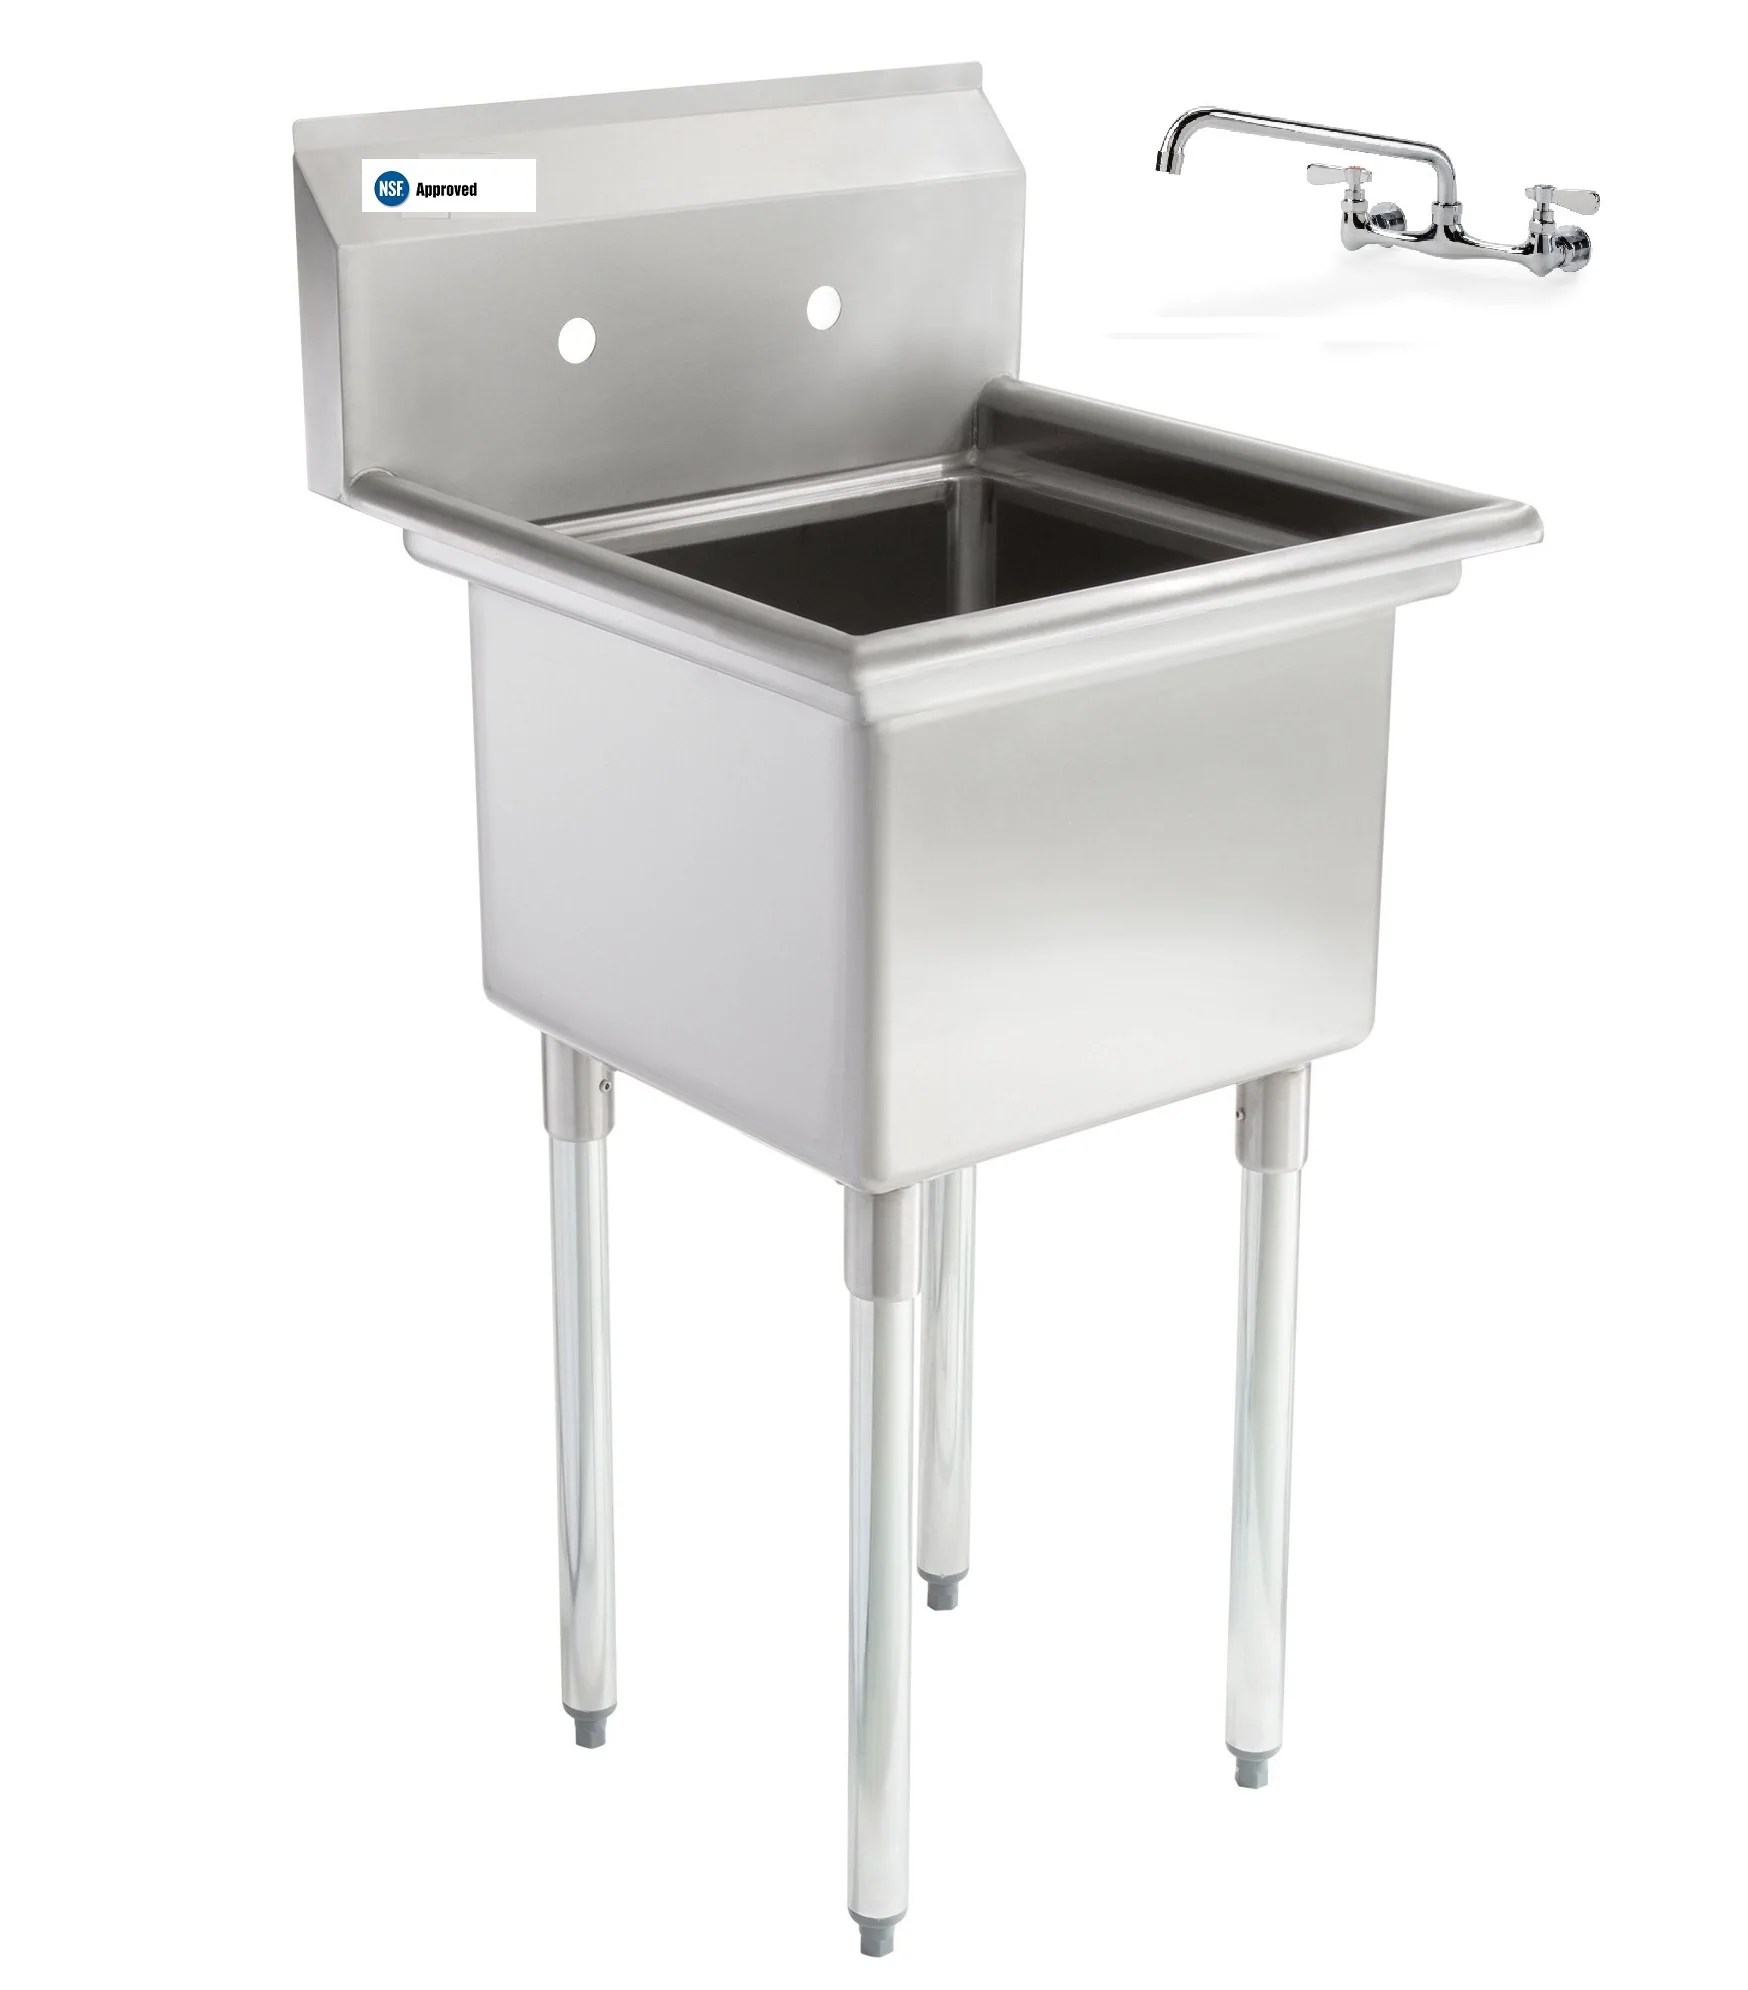 stainless steel one compartment commercial kitchen mop sink